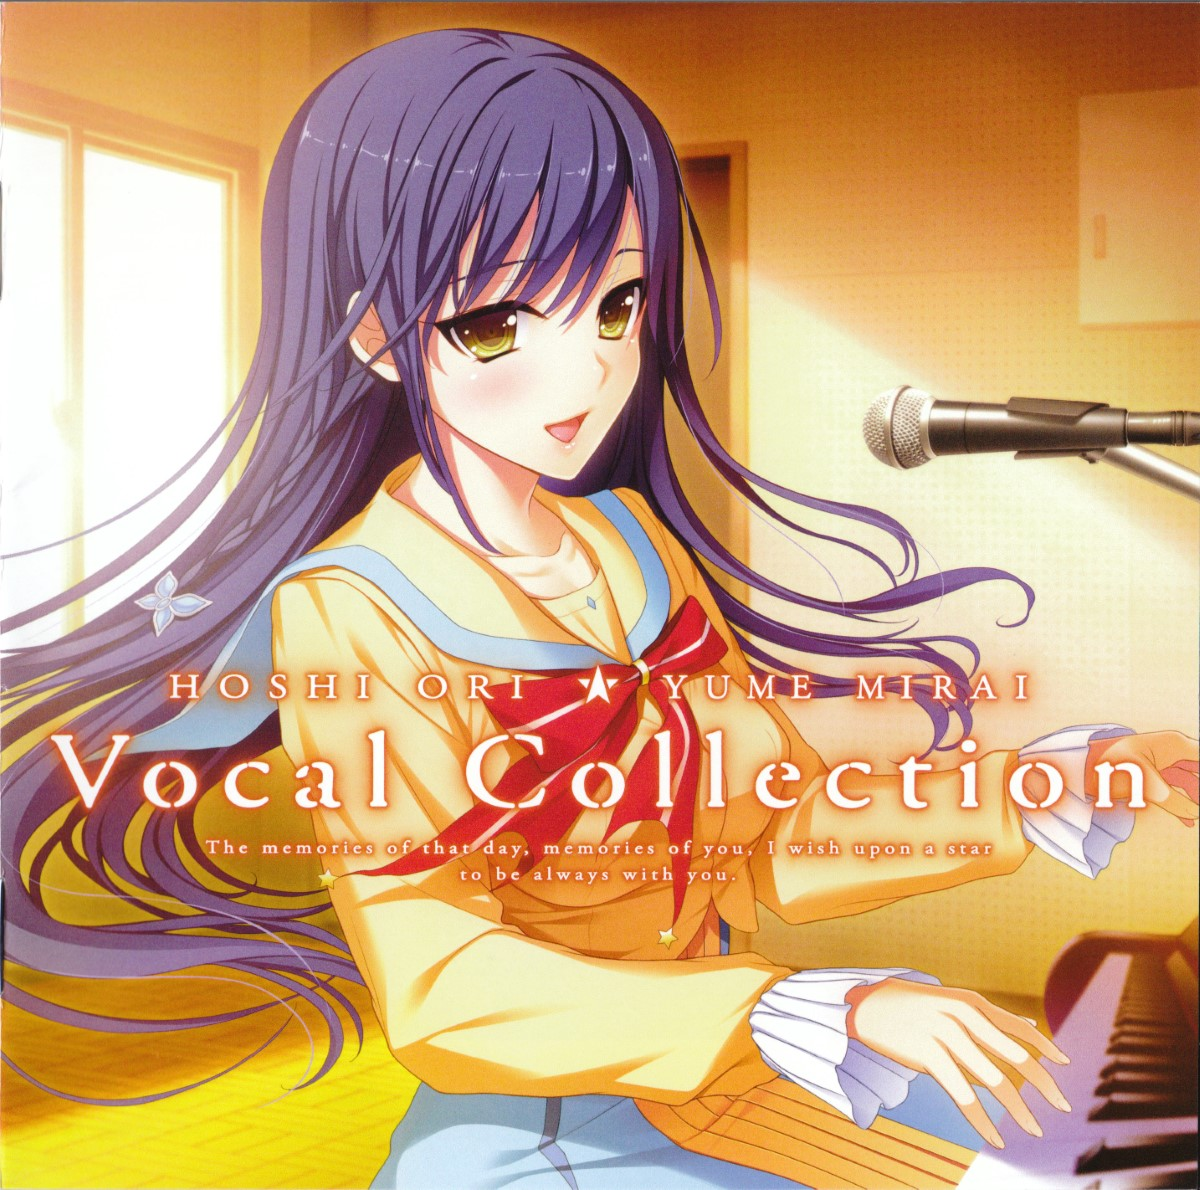 [140829][tone work's] 星織ユメミライ Vocal Collection [320K+BK]